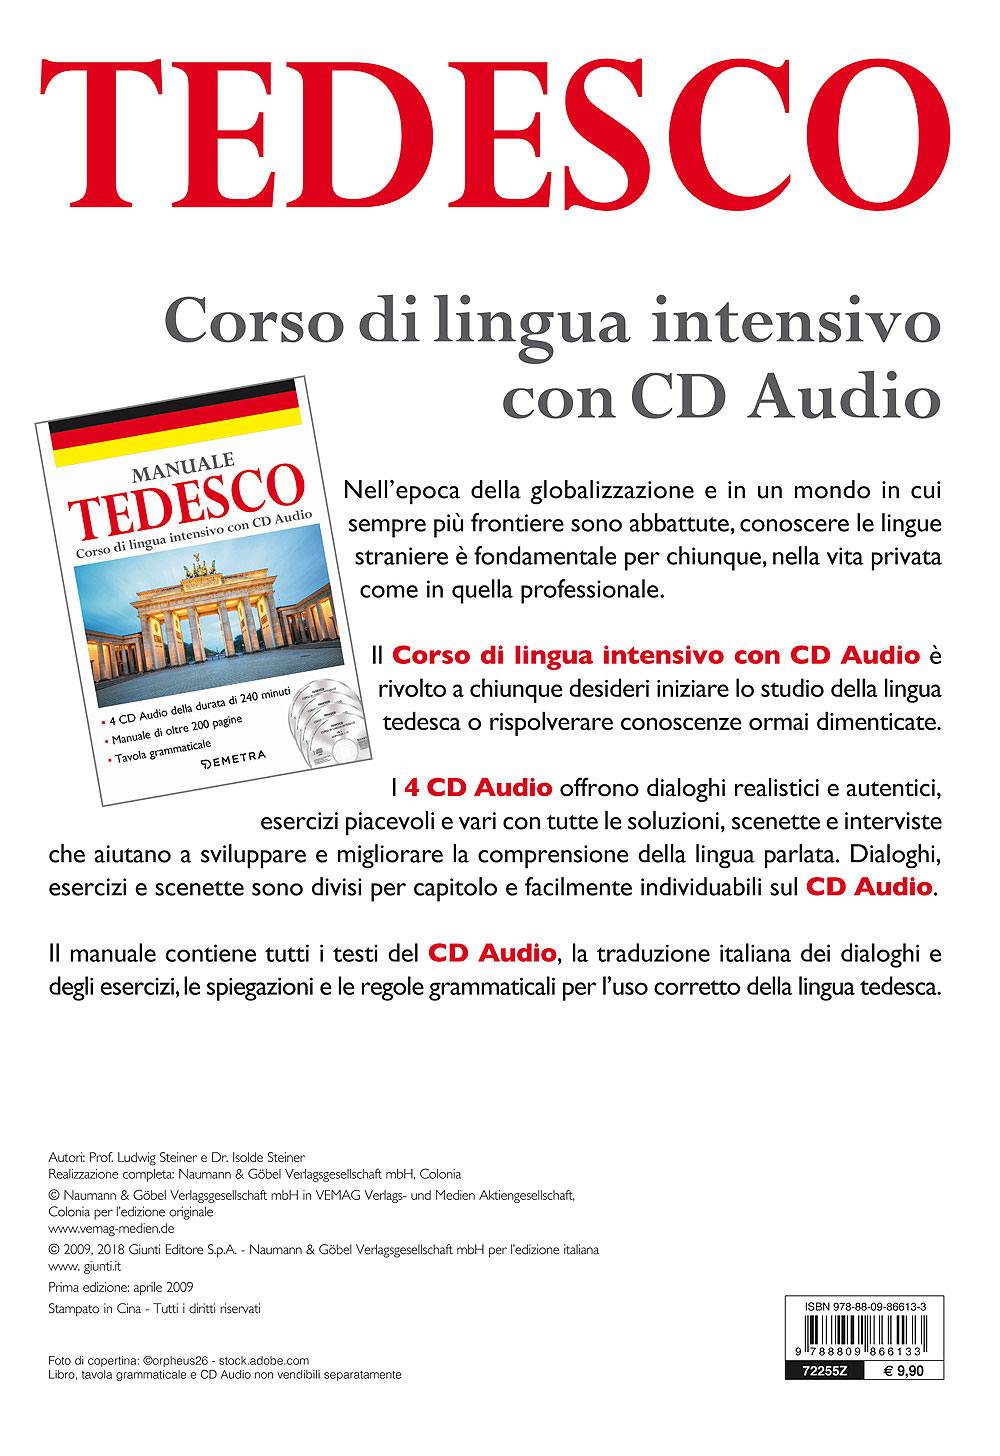 Corso di lingua Tedesco intensivo con CD Audio